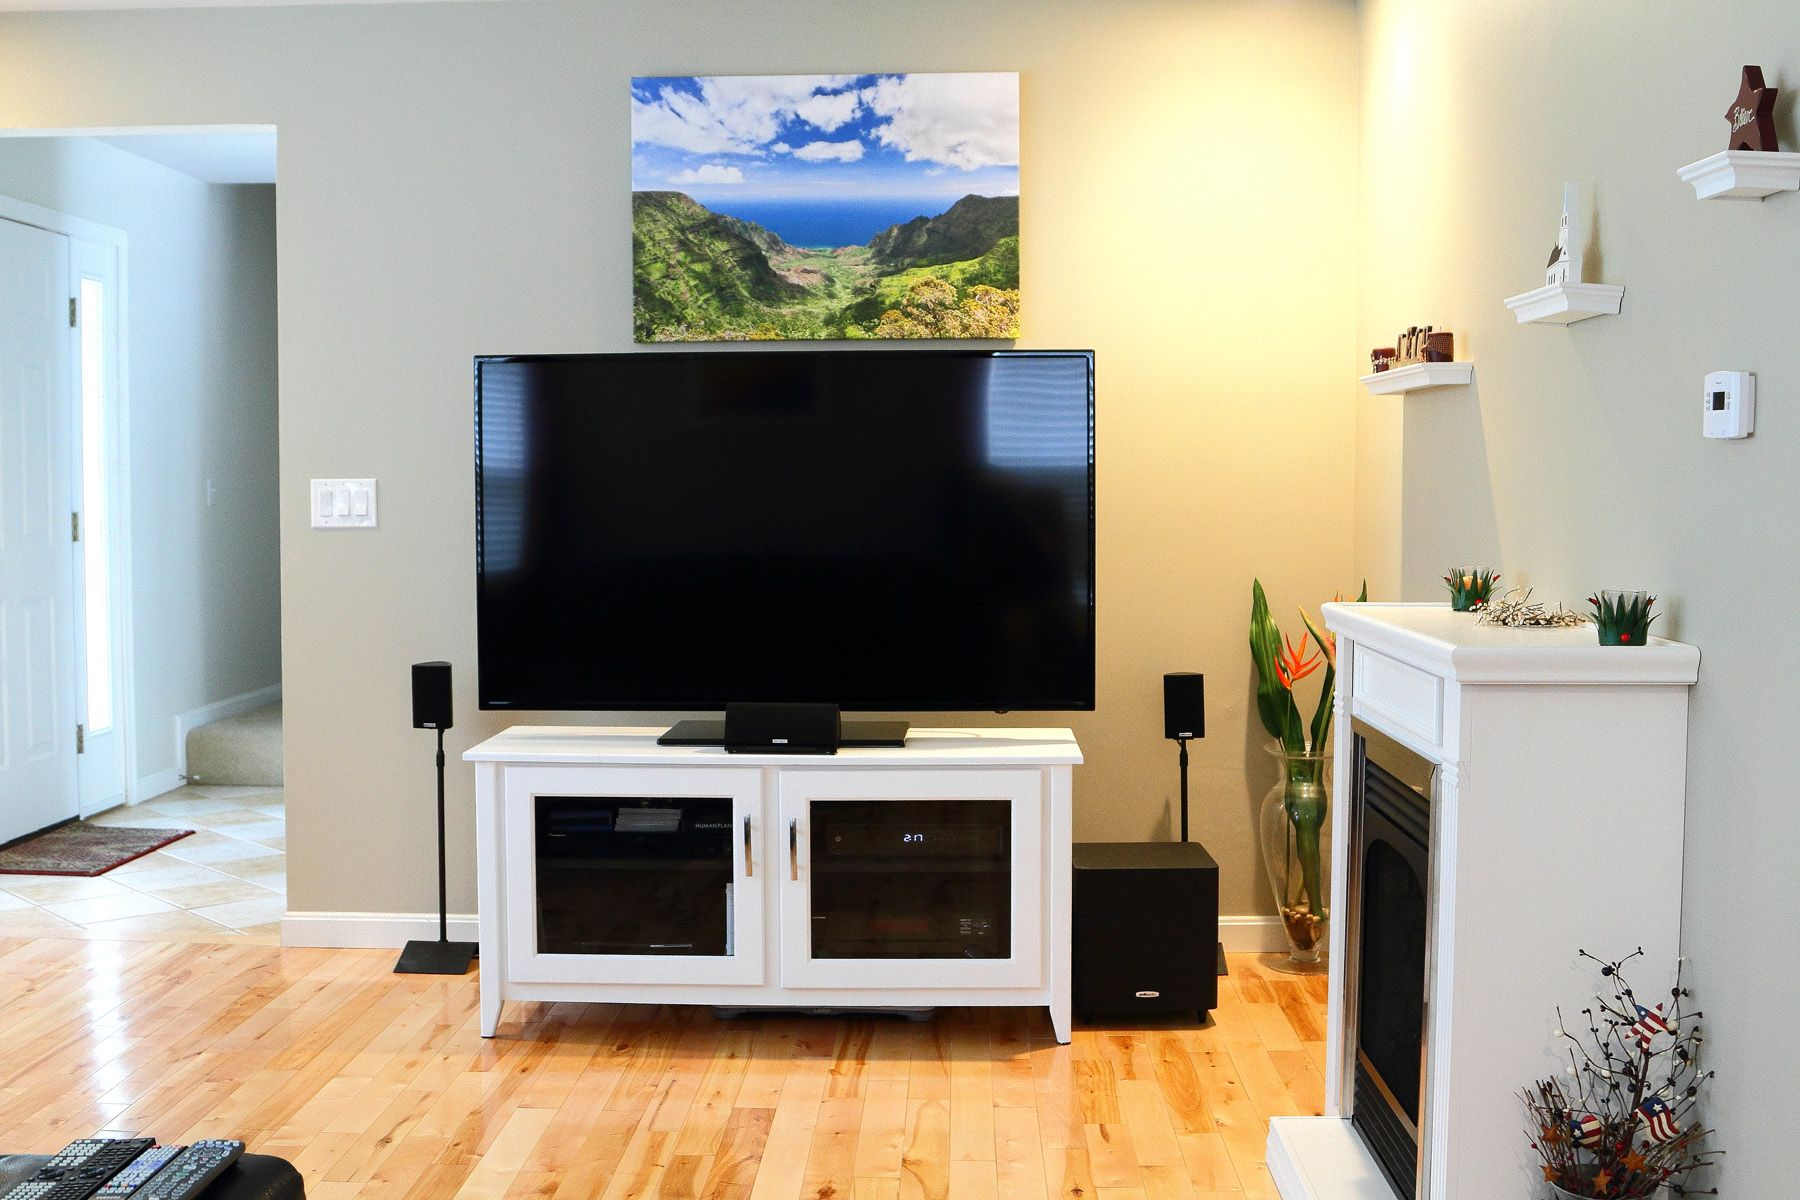 Tv In Living Room get blown awayyour new smarttv. this is one helluva smarthome